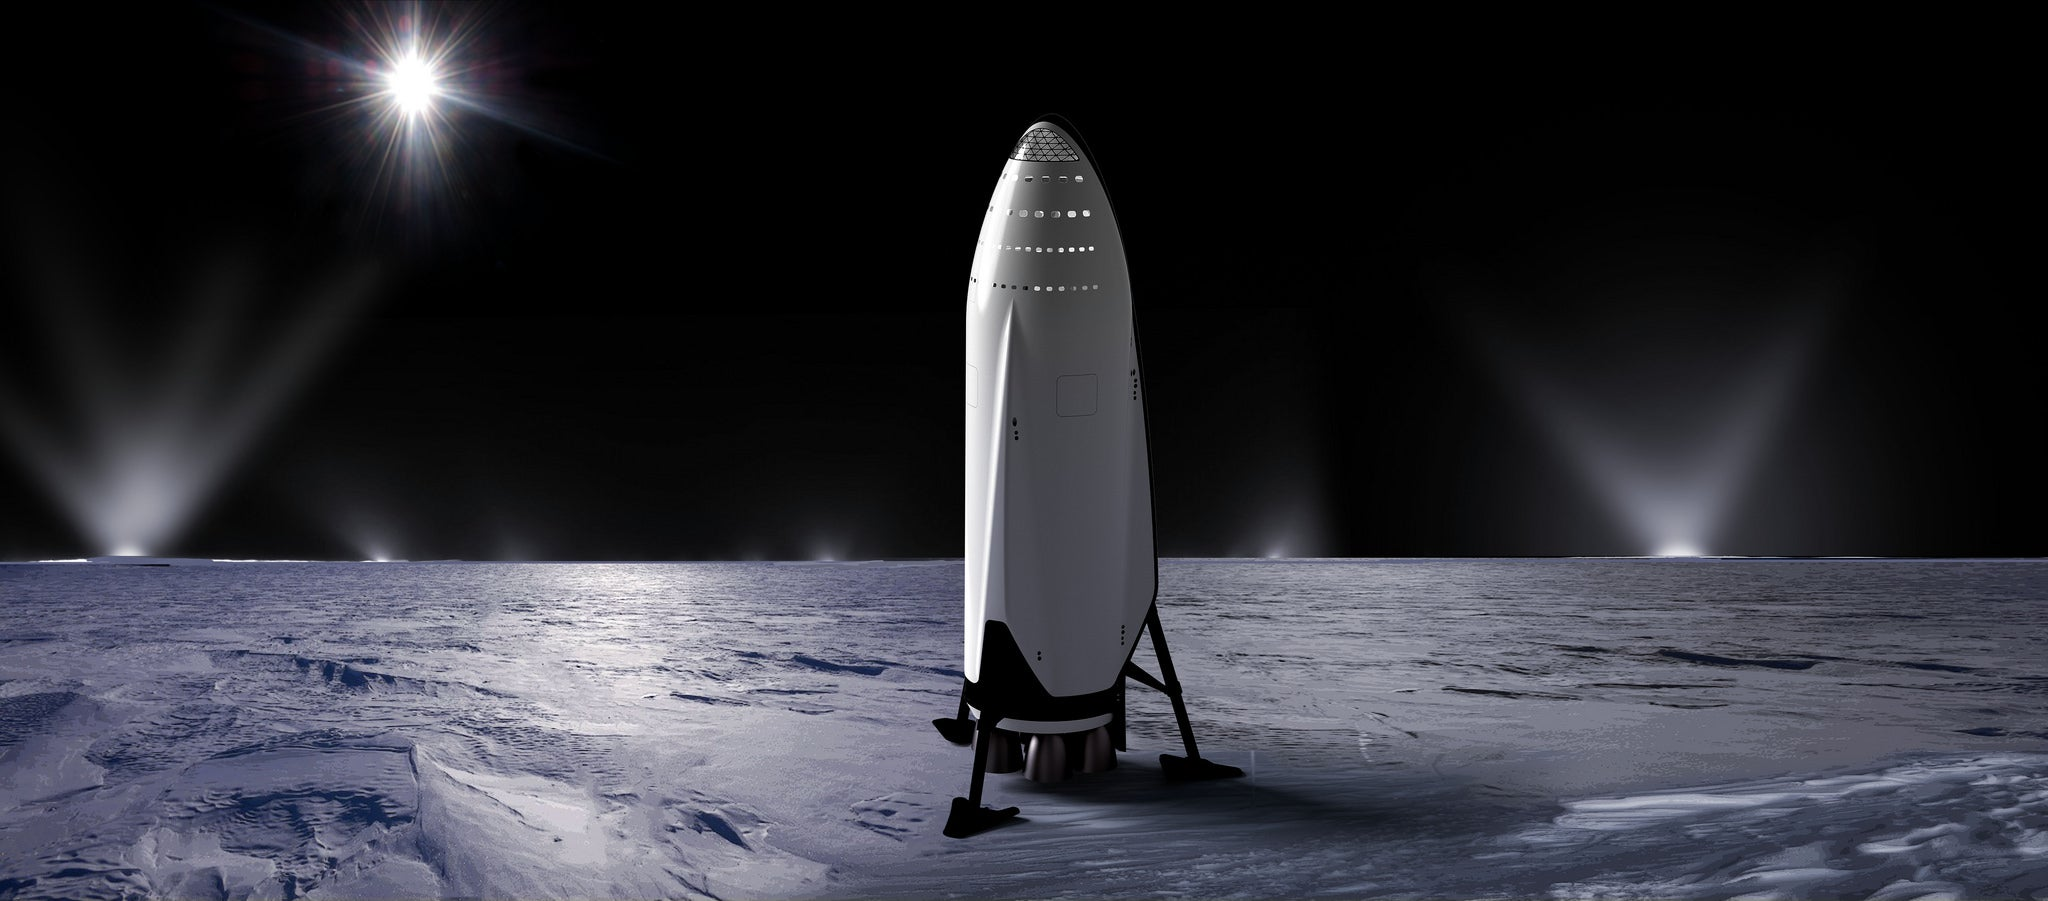 elon-musk image-cache interplanetary-transport-system ist mars space spacex